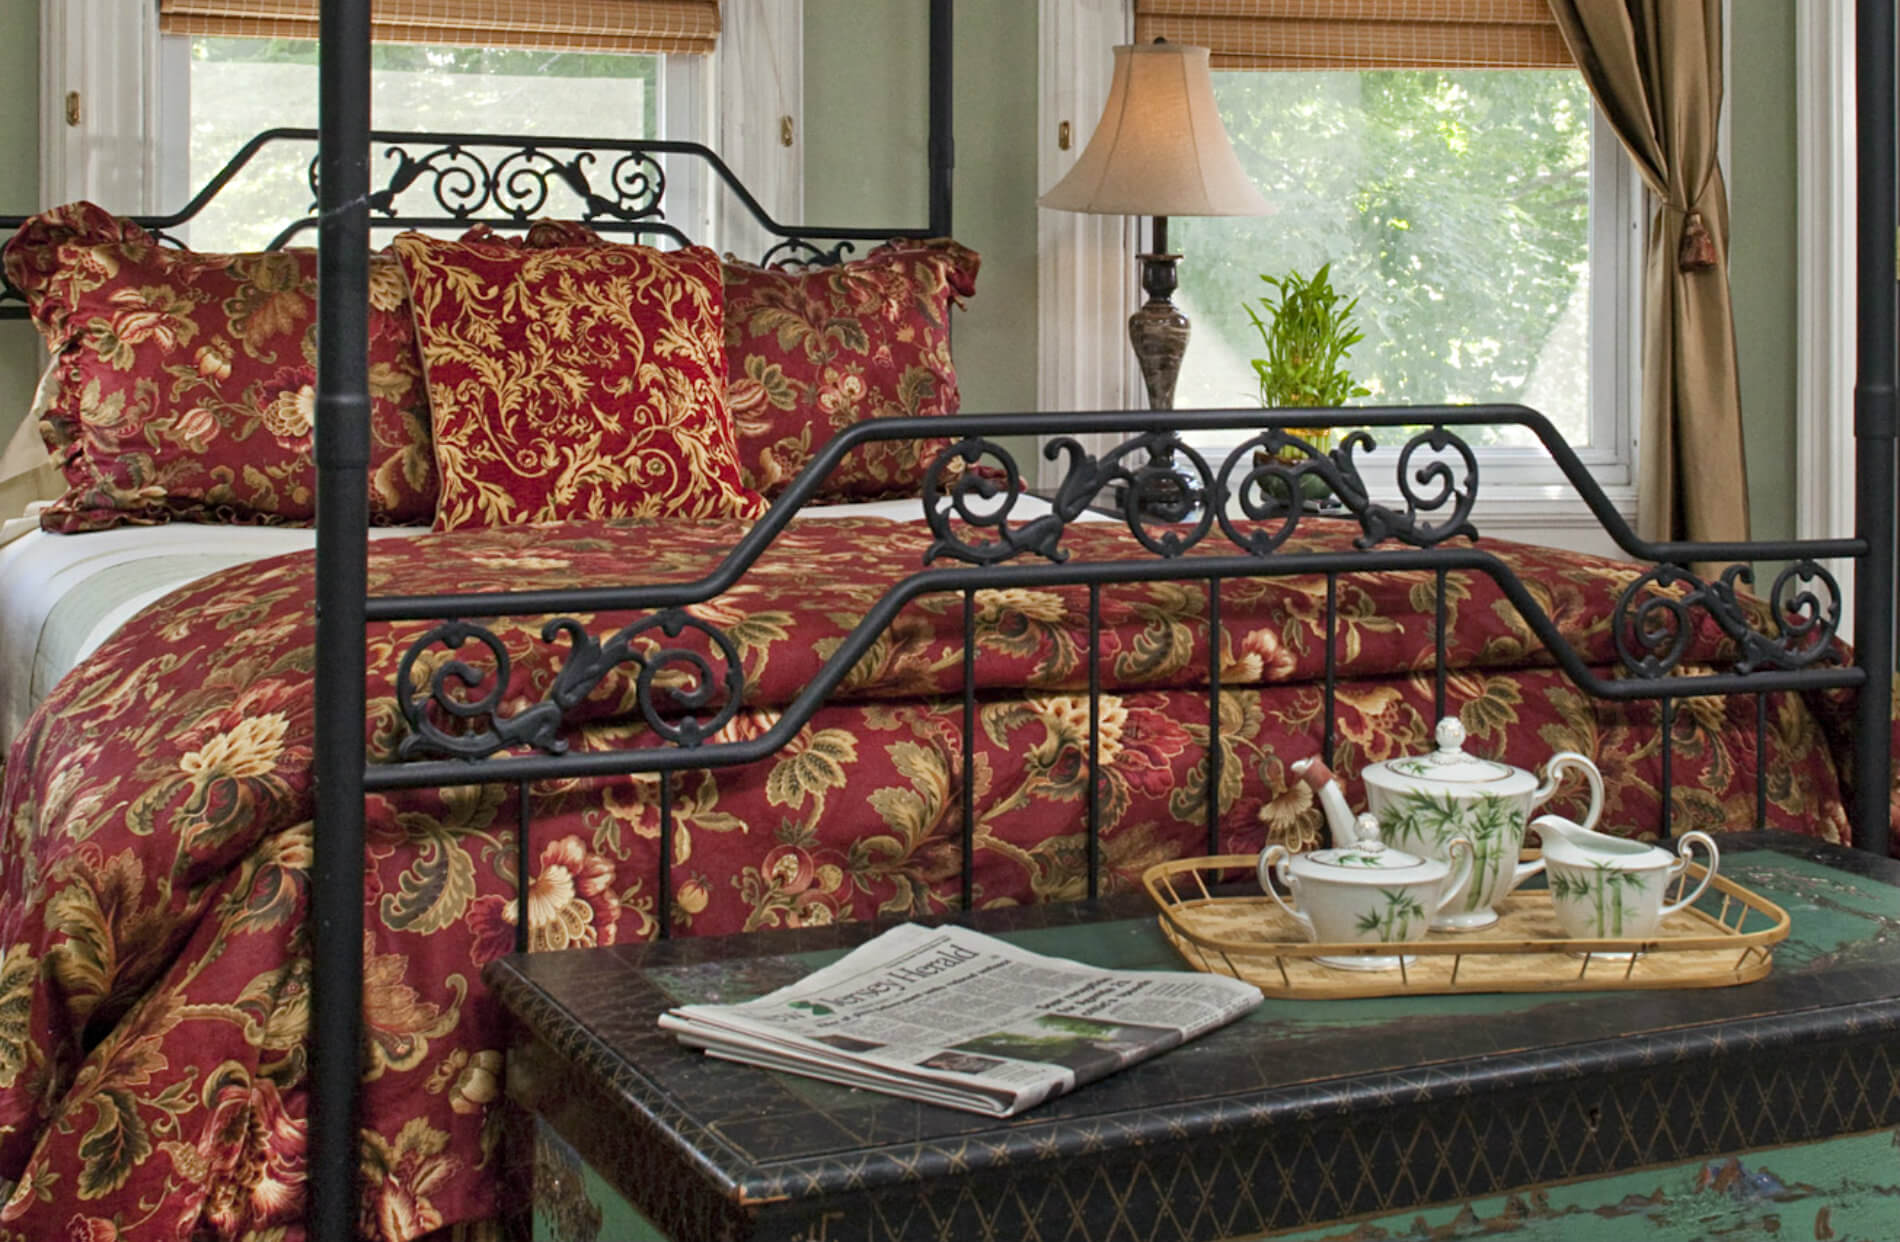 Iron bed with red and gold bedding and seat at foot of bed